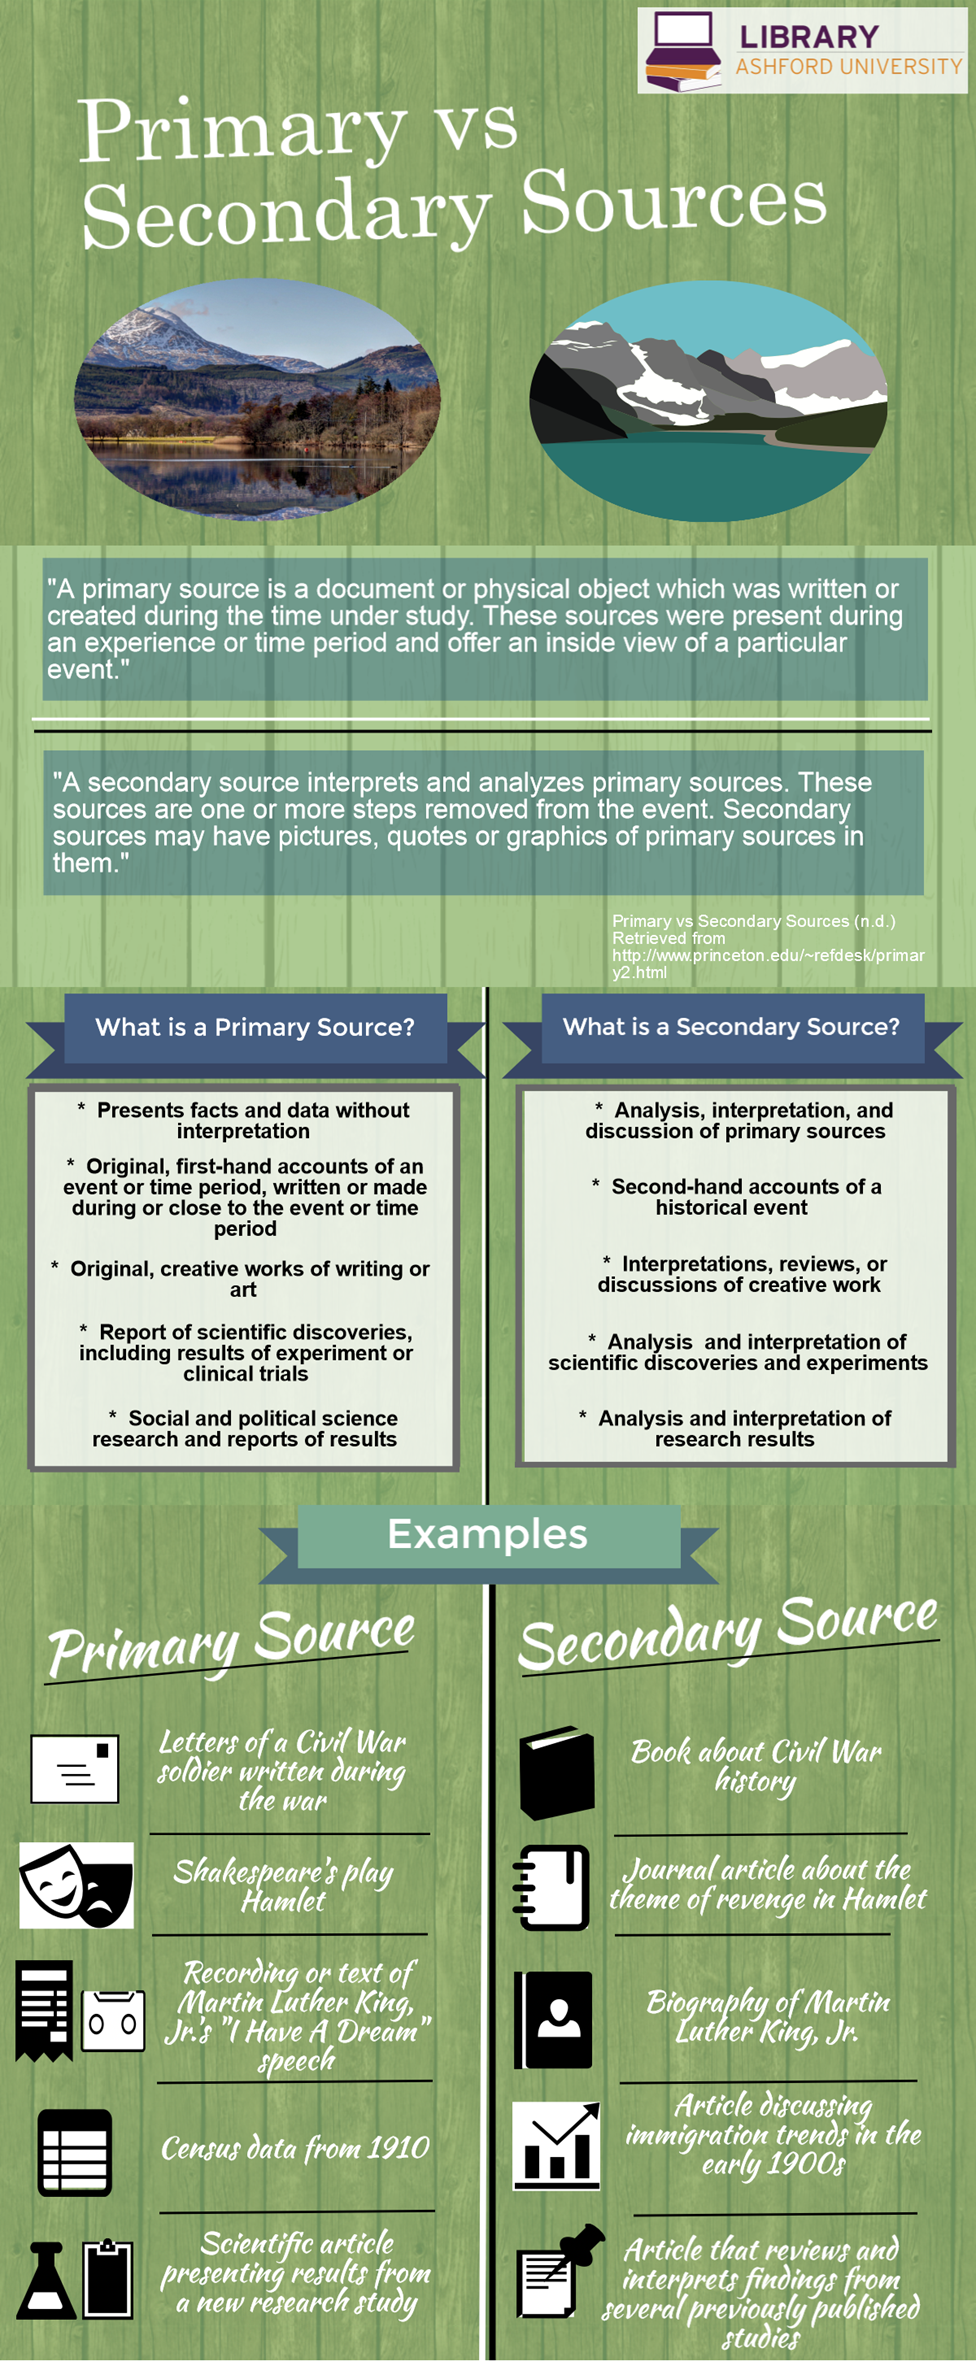 locating scholarly sources ashford an101 And the following are a list of scholarly sources that will be used:  locating scholarly sources  ashford university an101 locating scholarly articles.